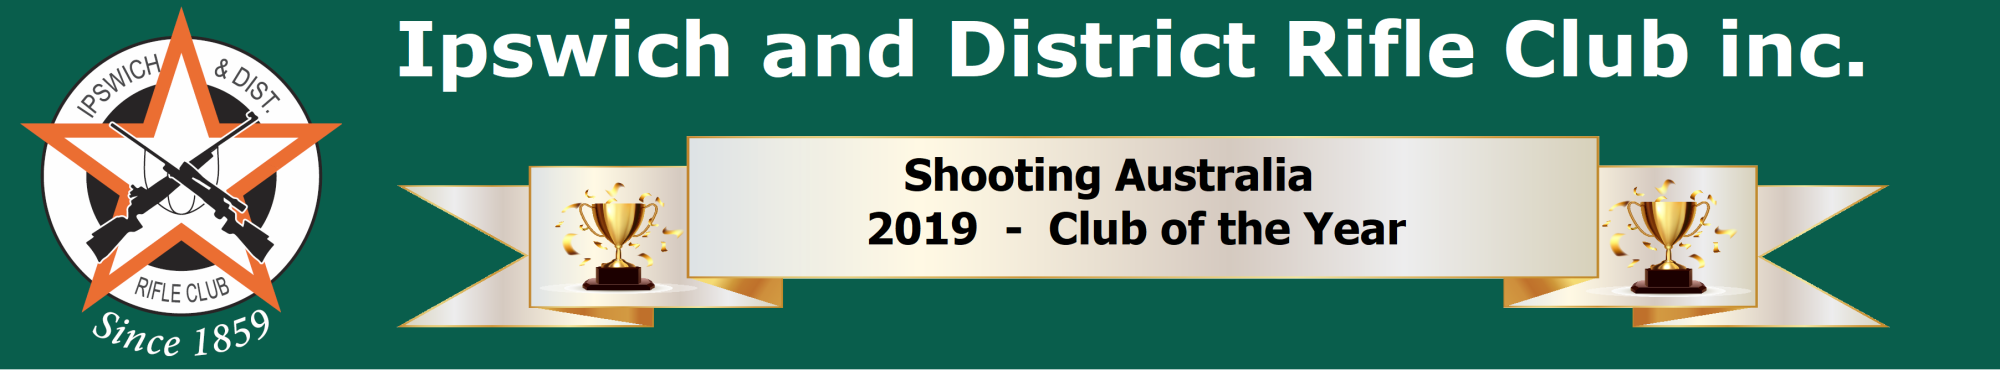 Ipswich and District Rifle Club